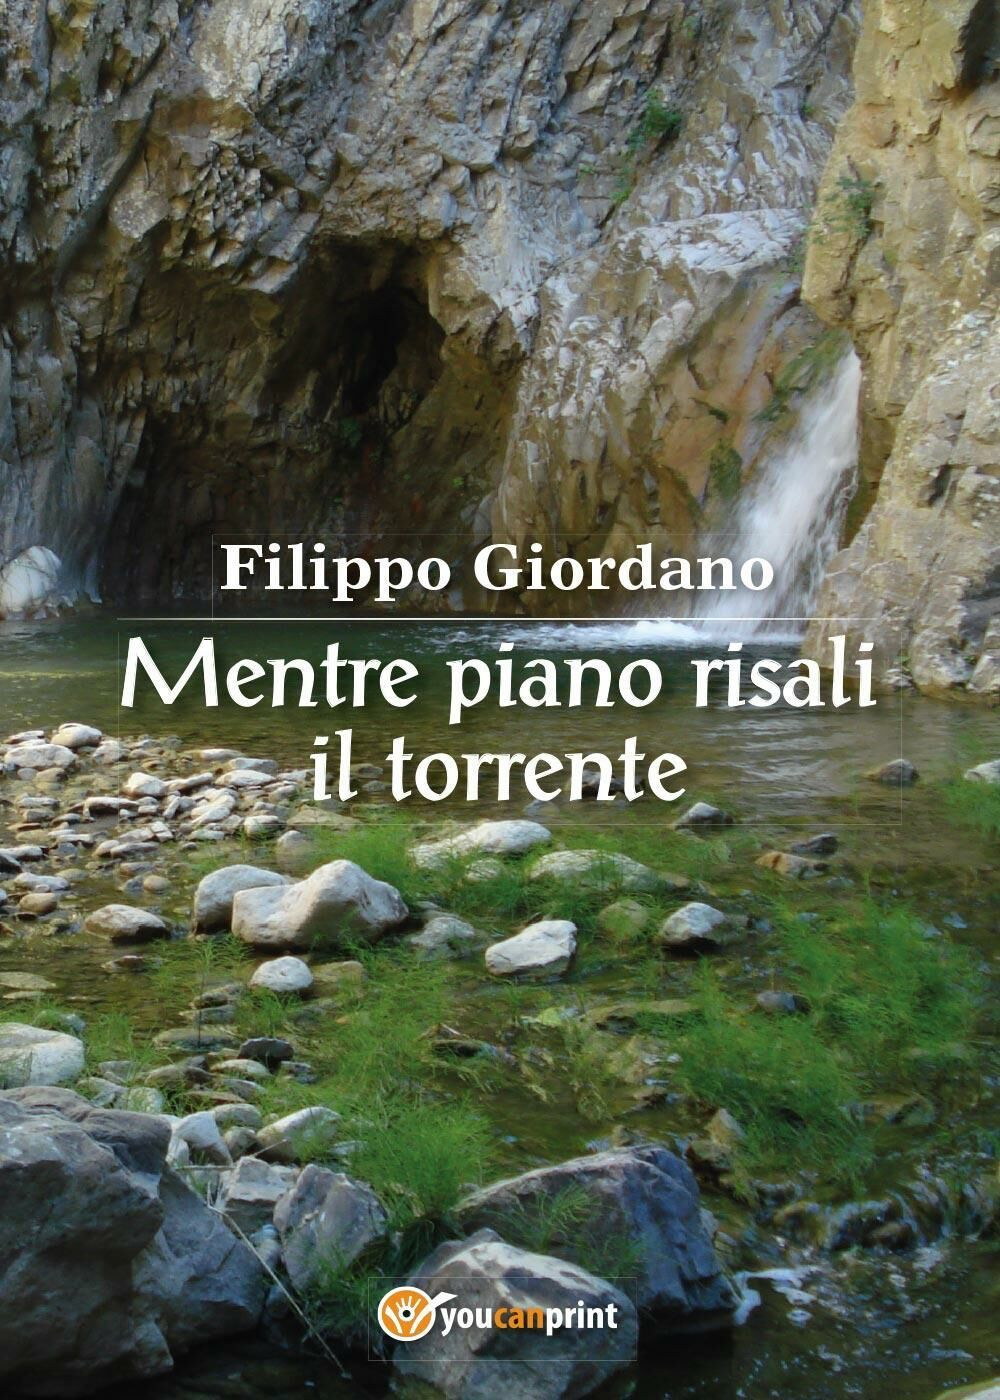 Mentre piano risali il torrente